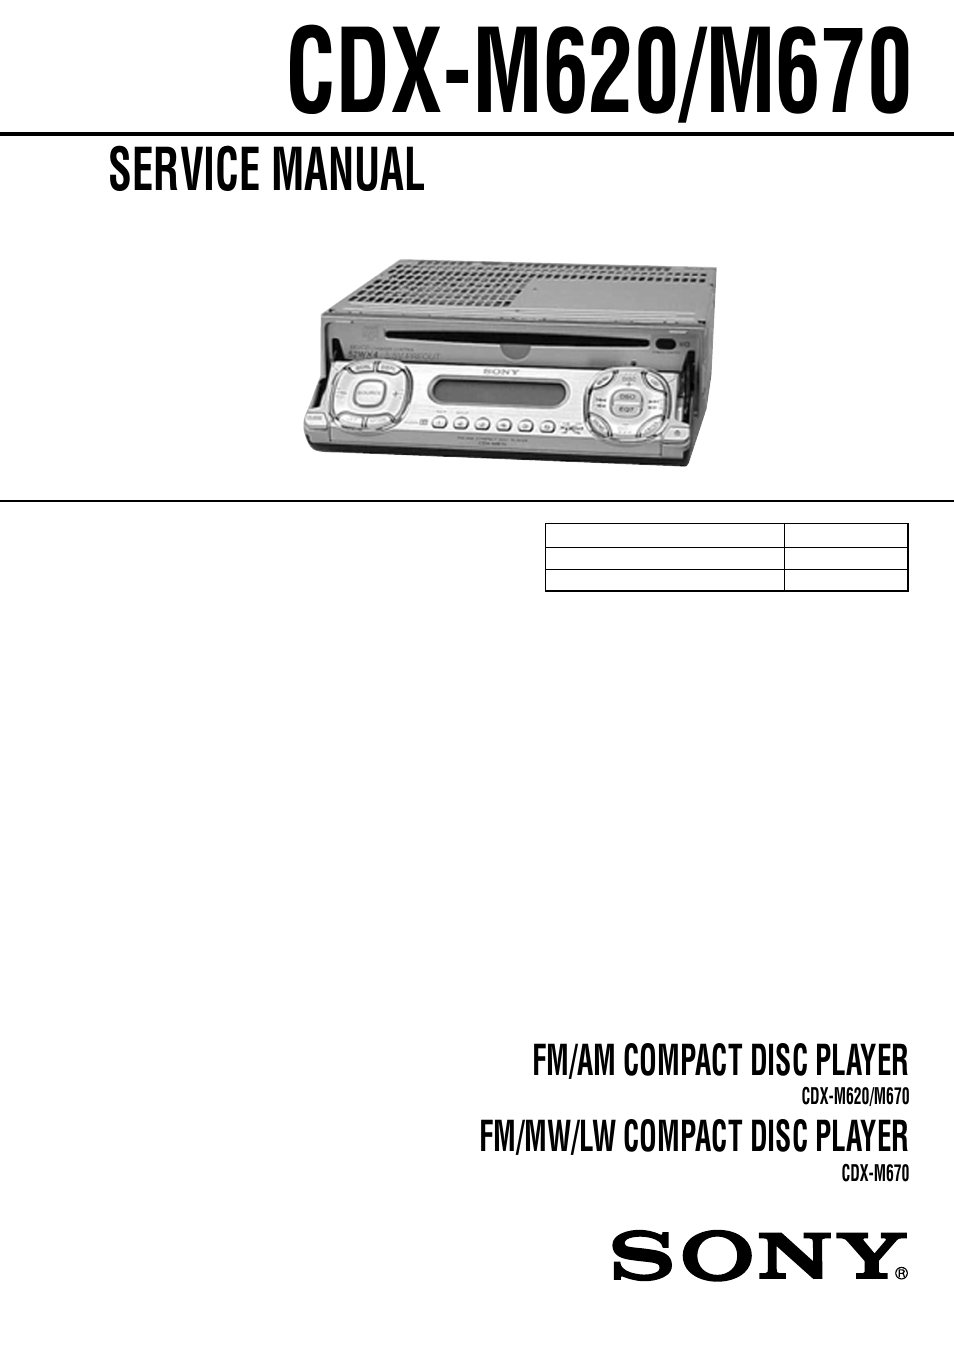 Sony Cdx M620 Wiring Diagram Libraries Explod Gt530 Ericsson User Manual 78 Pagessony 1